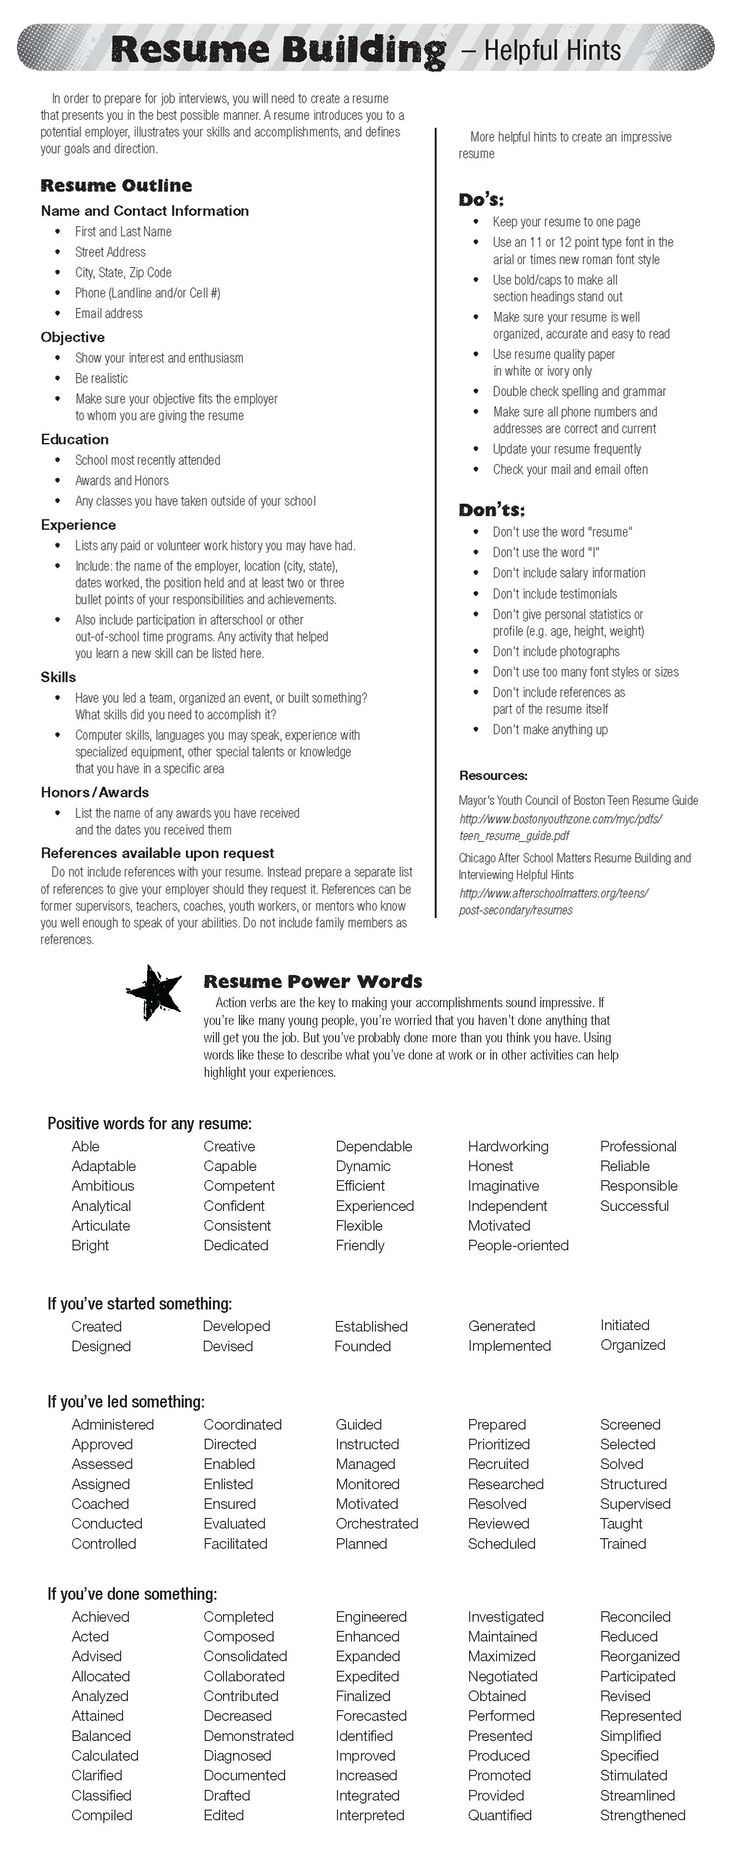 Picnictoimpeachus  Ravishing  Ideas About Resume On Pinterest  Cv Format Resume  With Goodlooking Check Out Todays Resume Building Tips Resume Resumepowerwords With Beauteous Functional Format Resume Also How To Write A Nursing Resume In Addition Icu Rn Resume And Careerbuilder Resume Search As Well As Creating A Resume Online Additionally Groupon Resume From Pinterestcom With Picnictoimpeachus  Goodlooking  Ideas About Resume On Pinterest  Cv Format Resume  With Beauteous Check Out Todays Resume Building Tips Resume Resumepowerwords And Ravishing Functional Format Resume Also How To Write A Nursing Resume In Addition Icu Rn Resume From Pinterestcom